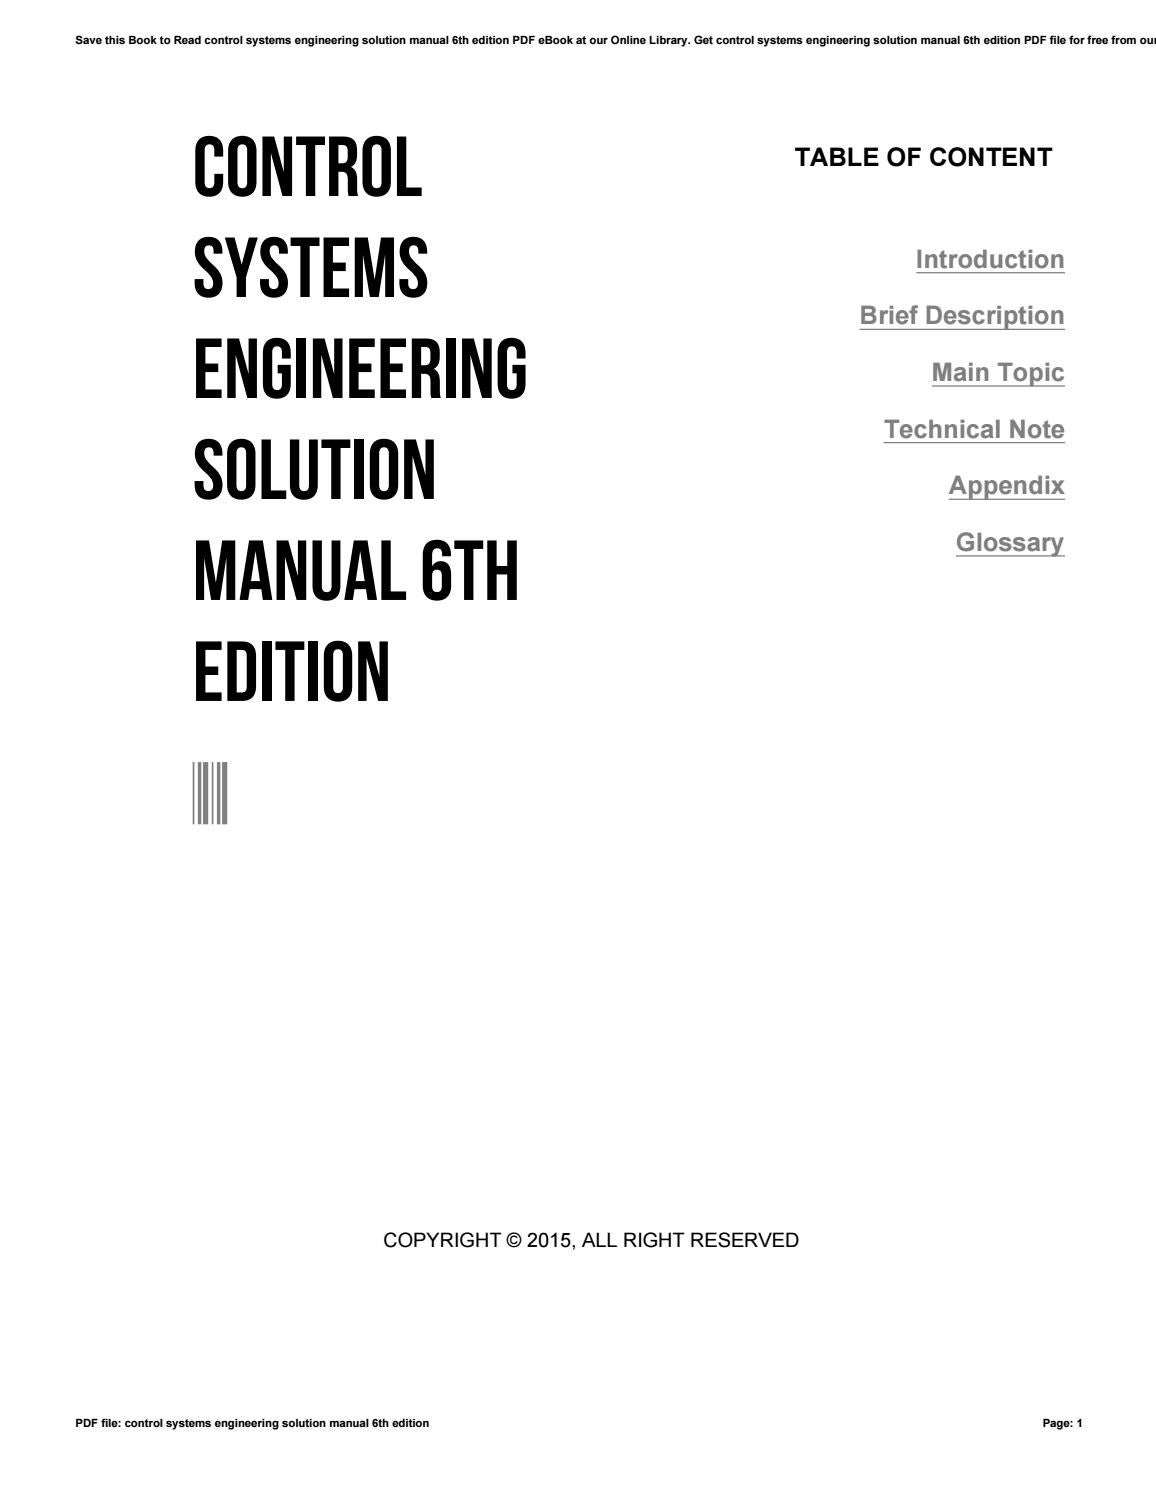 Control systems engineering solution manual 6th edition by e-mailbox5 -  issuu